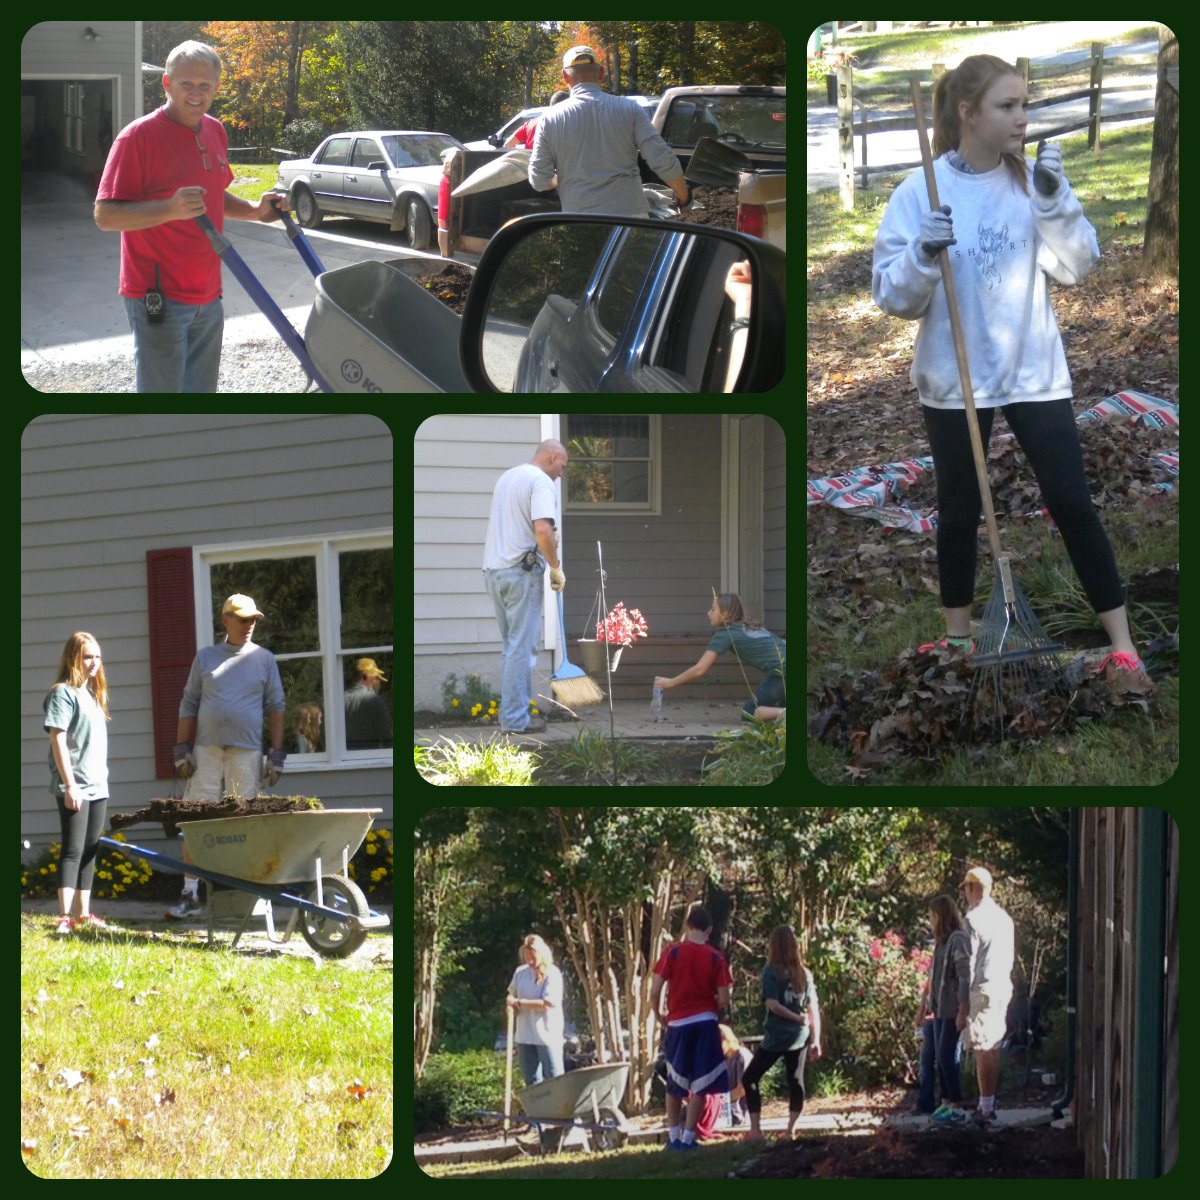 THANK YOU: Kevin & Nancy Langston, Lee & Laura Height, Lynn & Mims Davis, Denice Lupcke, Carrie McAlear, Jocelyn Crumpton, and Maureen Collins AS WELL AS everyone who helped out as their projects were completed.